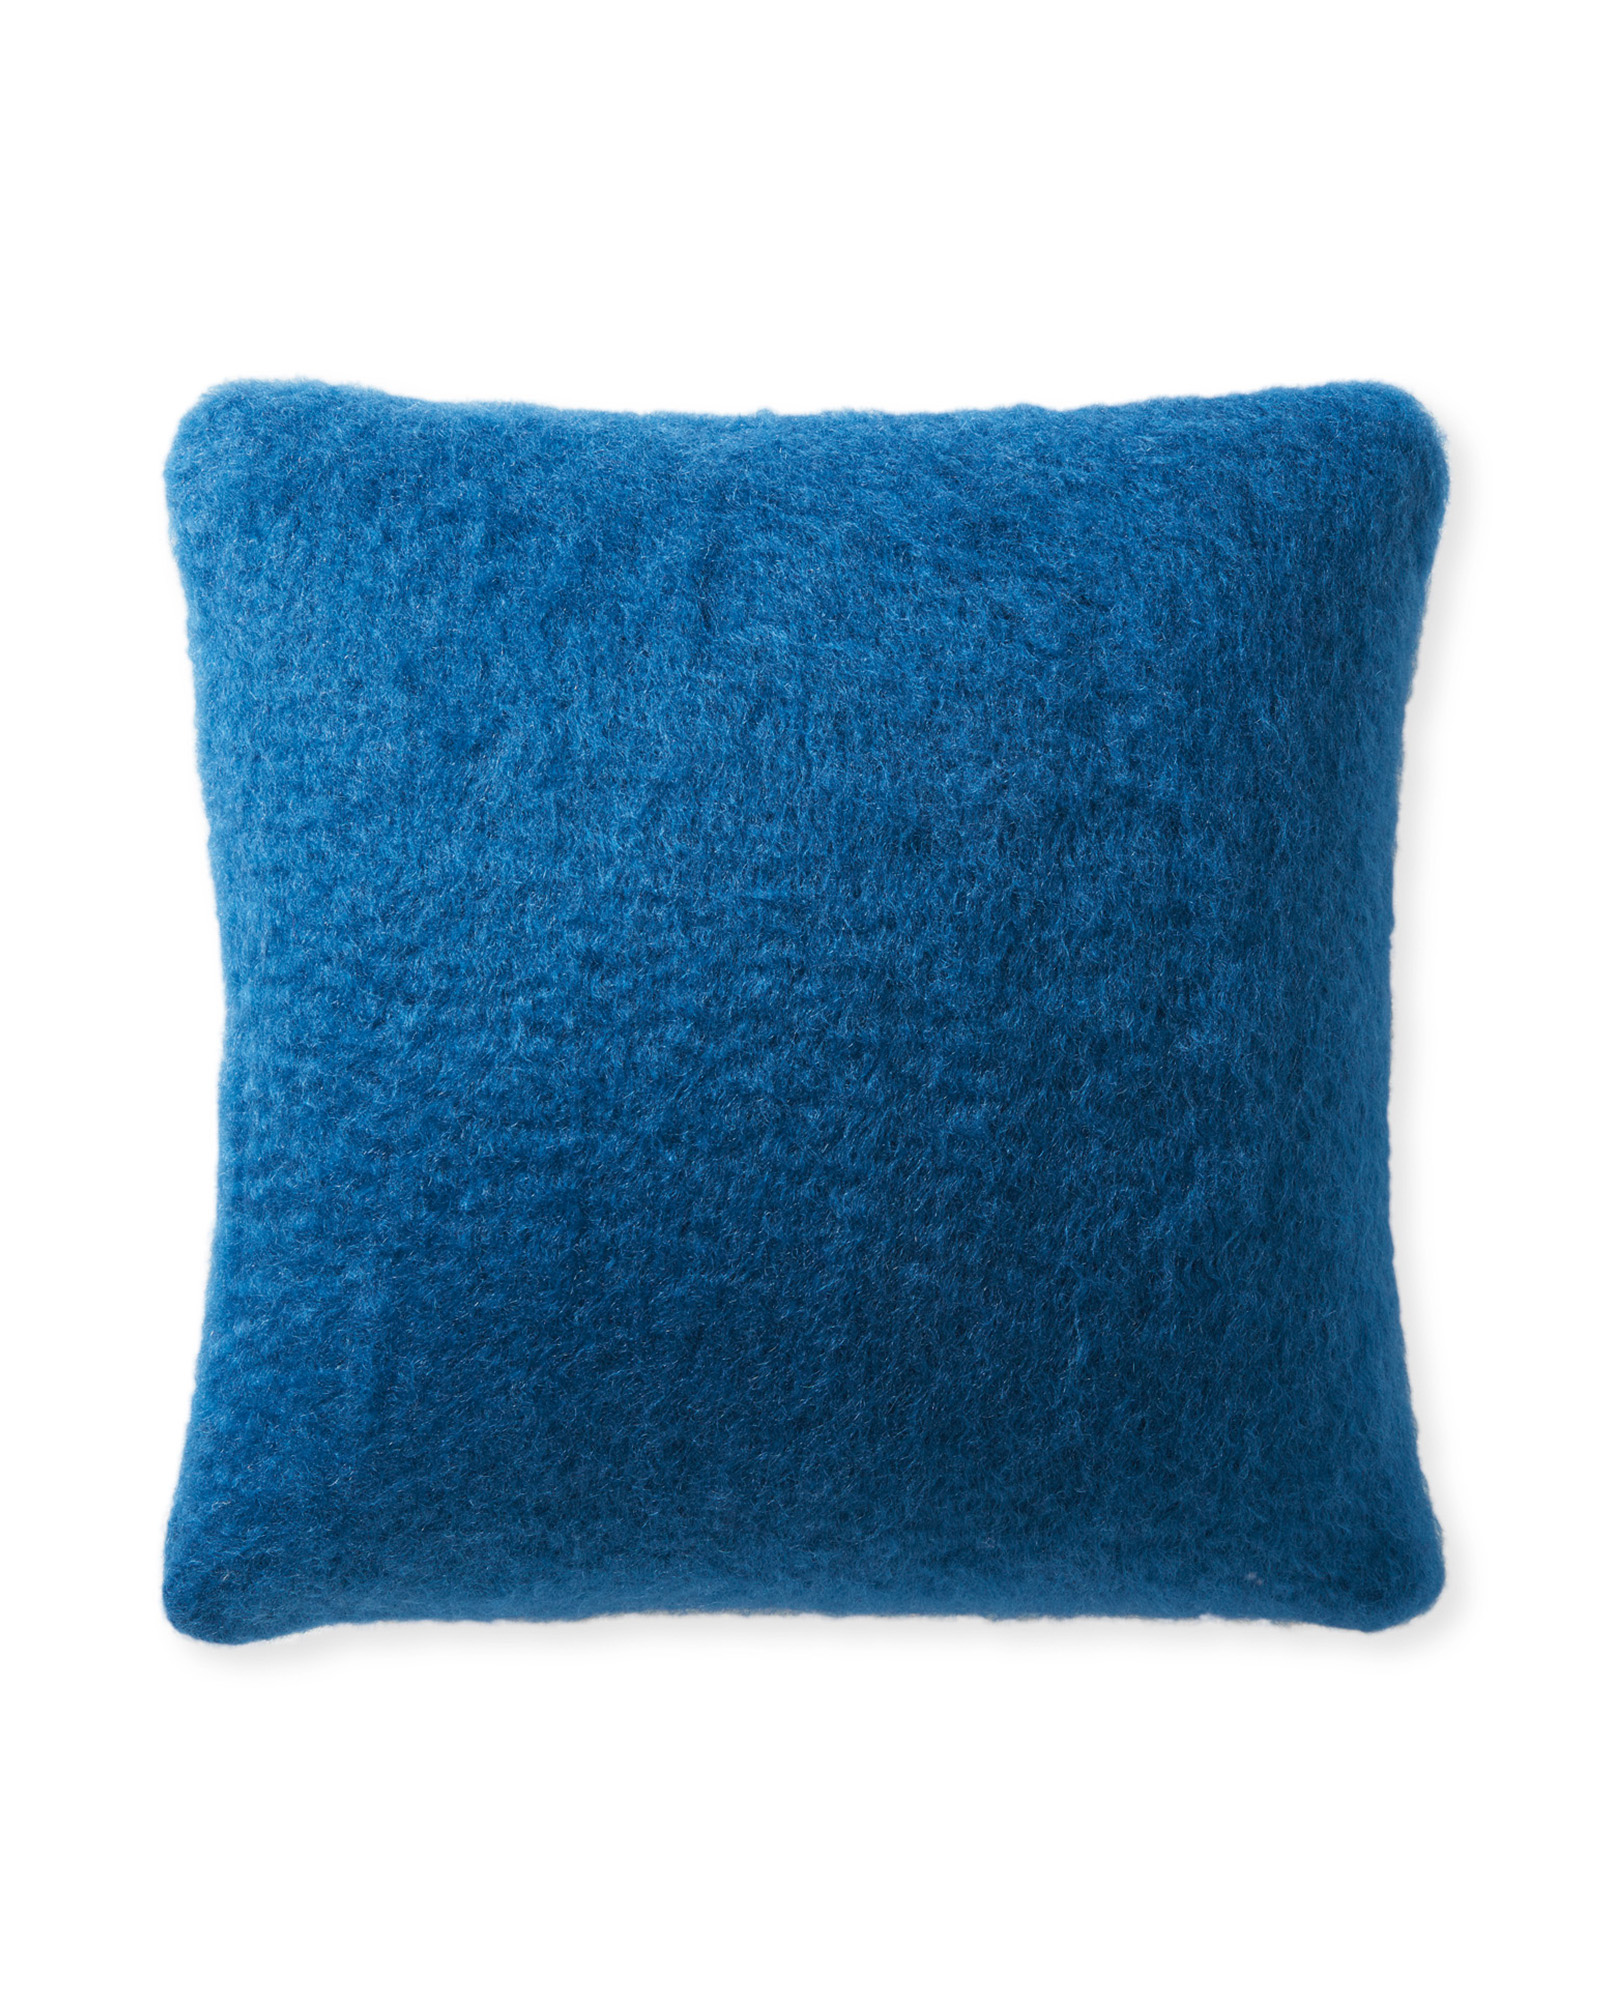 Albion Pillow Cover, Marine